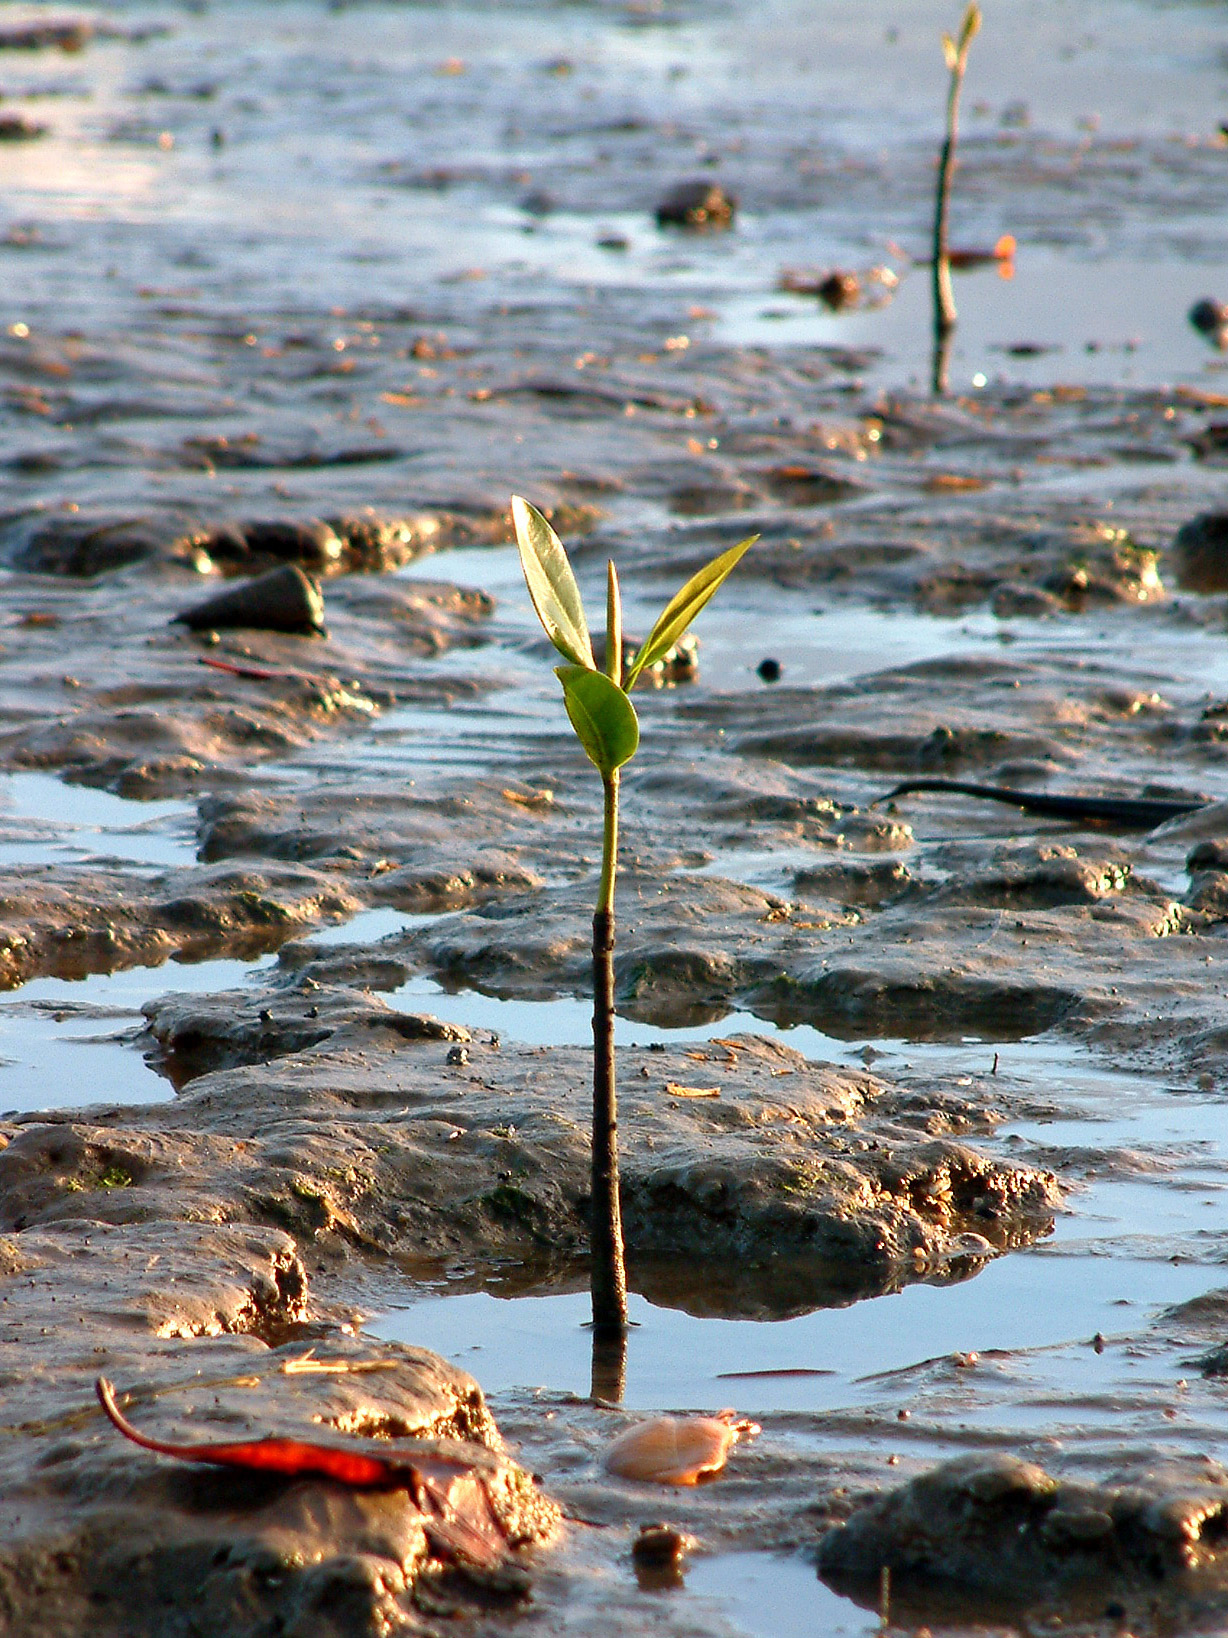 Stand tall like a Magrove Seedling by incorporating strength training into your healthy lifestyle